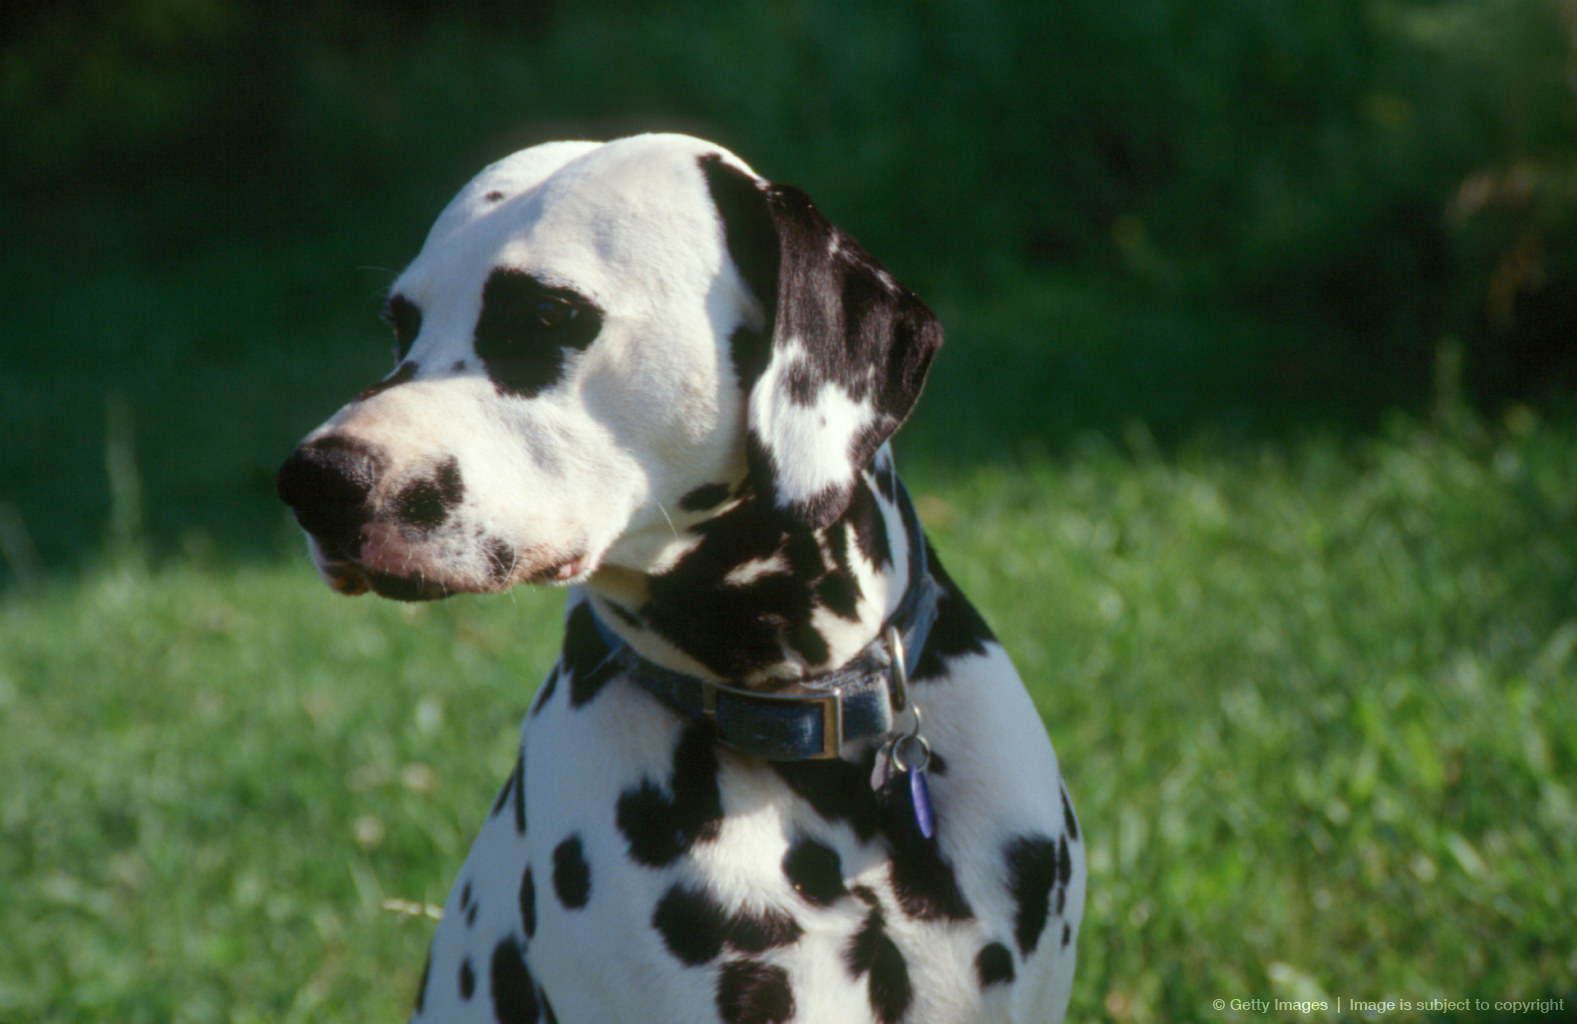 Dalmatian Puppy outside.